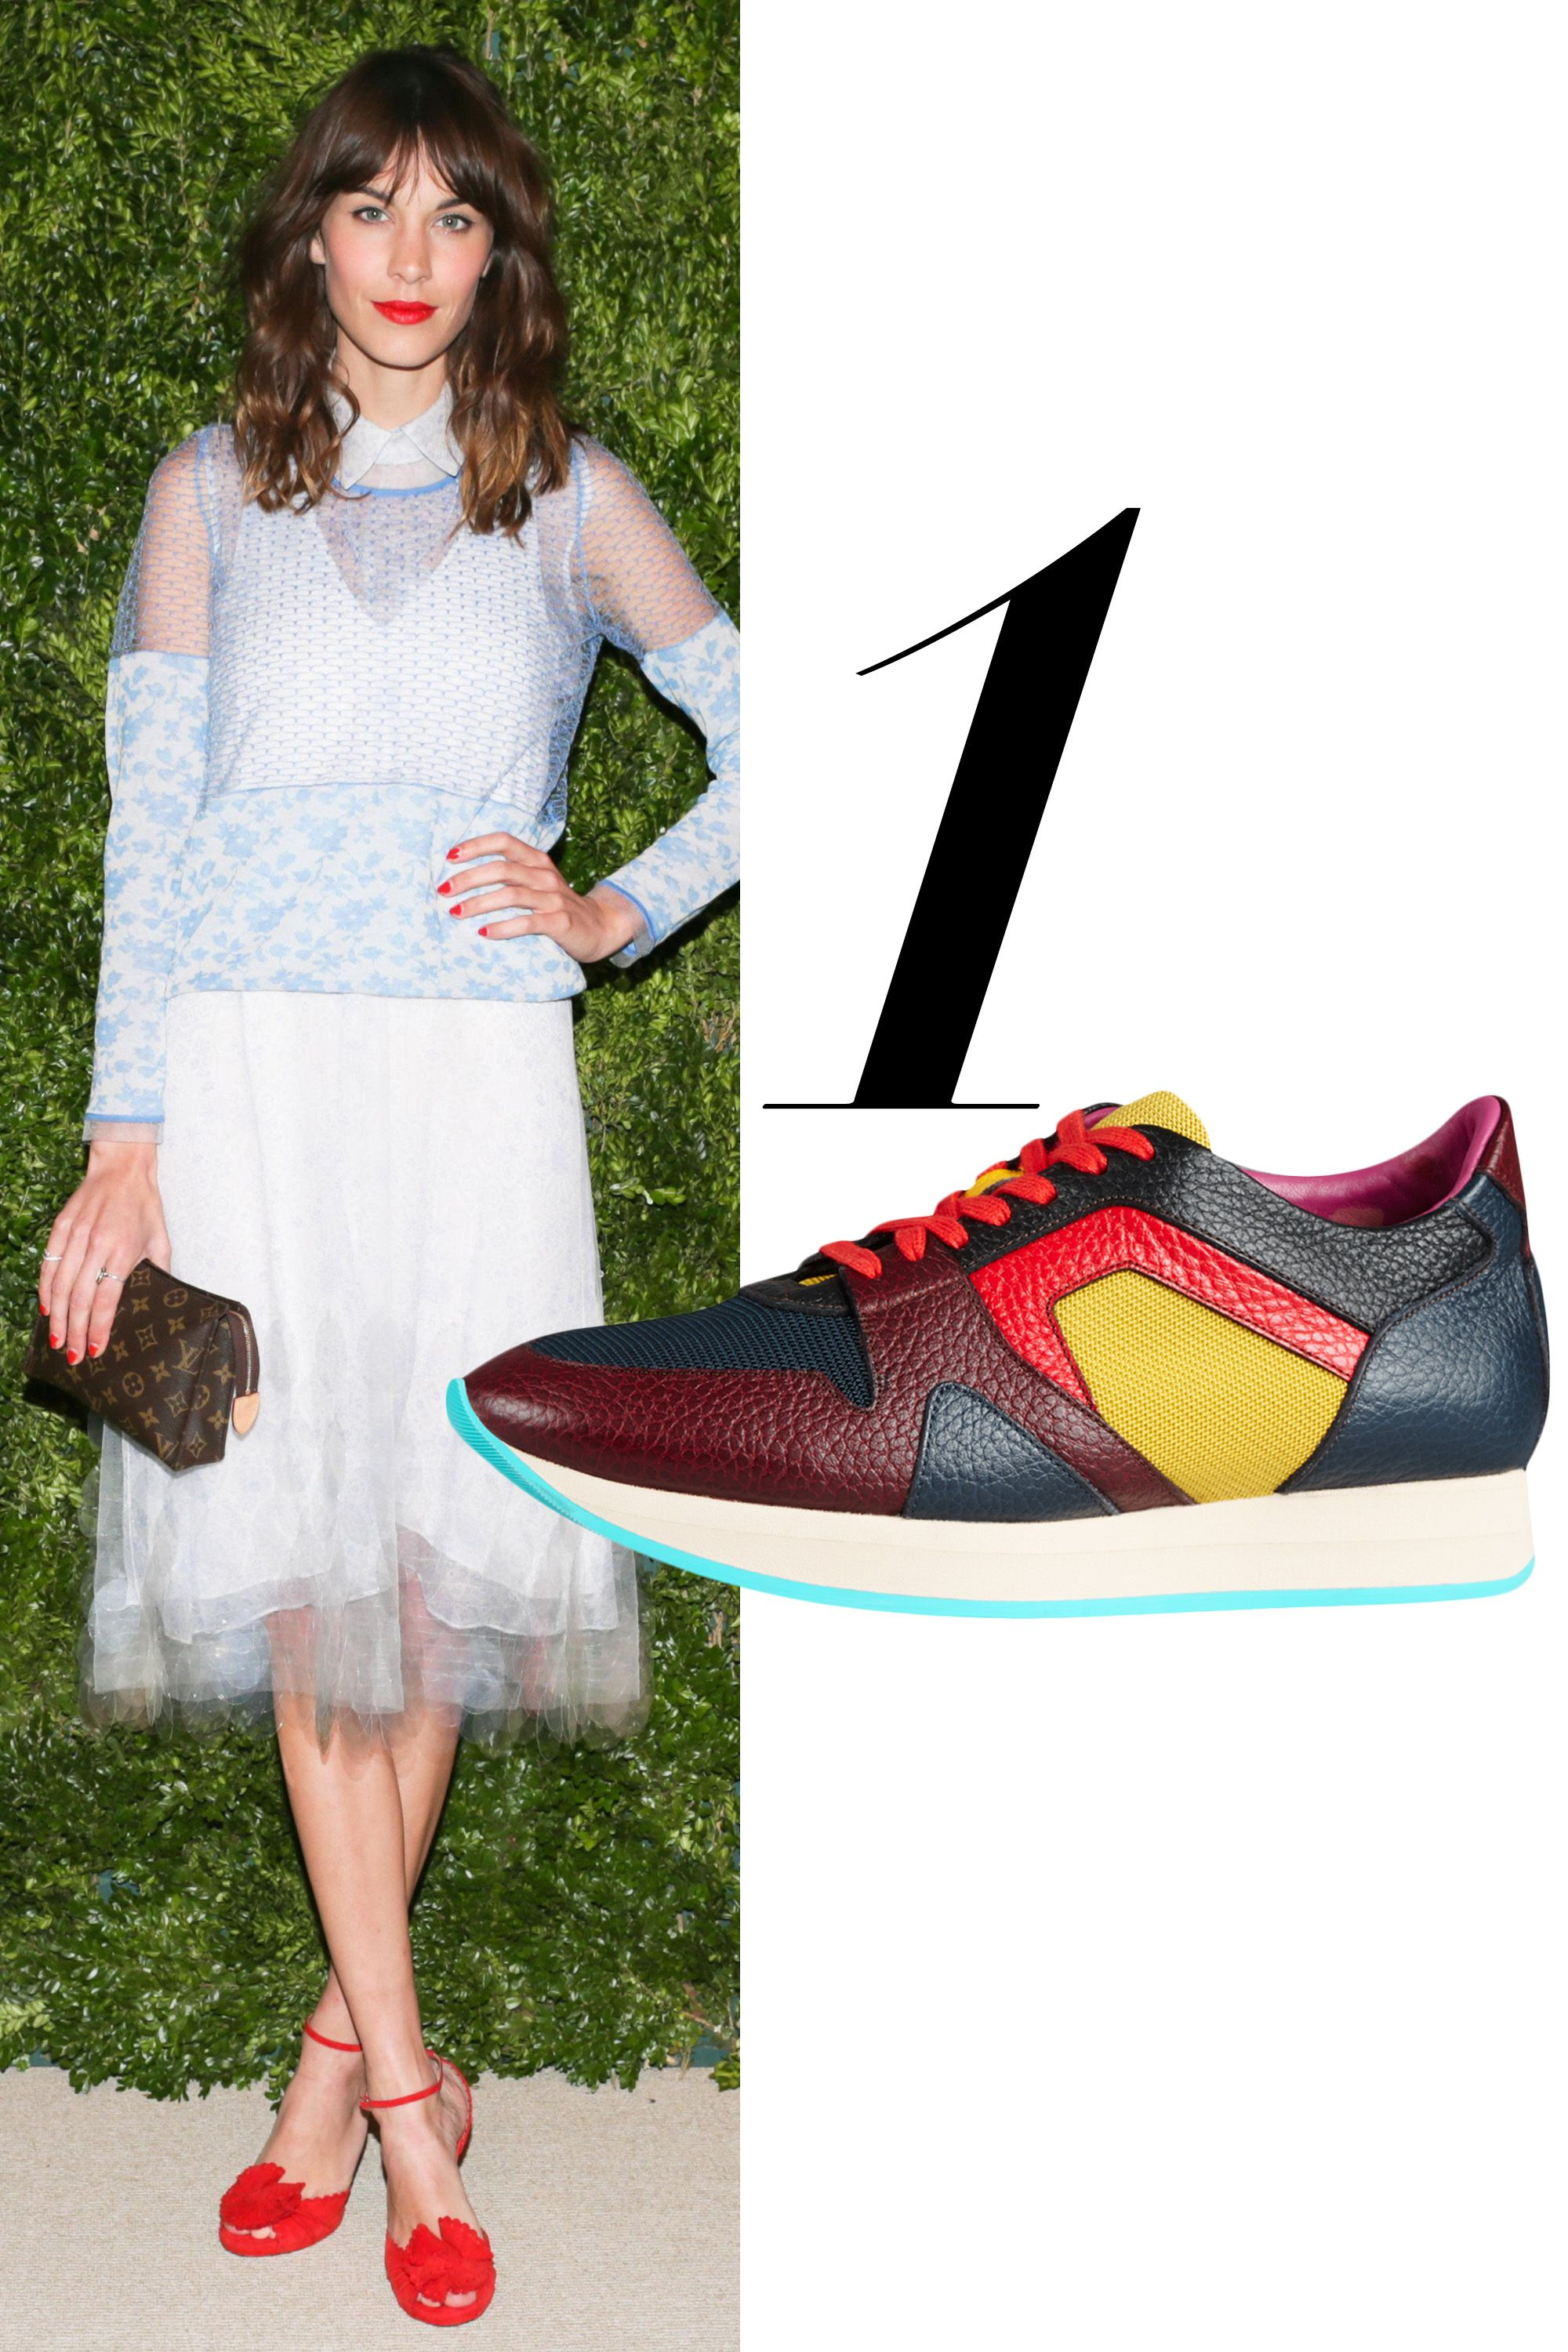 "<em>Burberry sneaker, $595, <a href=""http://us.burberry.com/the-field-sneaker-in-colour-block-leathermesh-p39732701"" target=""_blank"">burberry.com</a>.</em>"